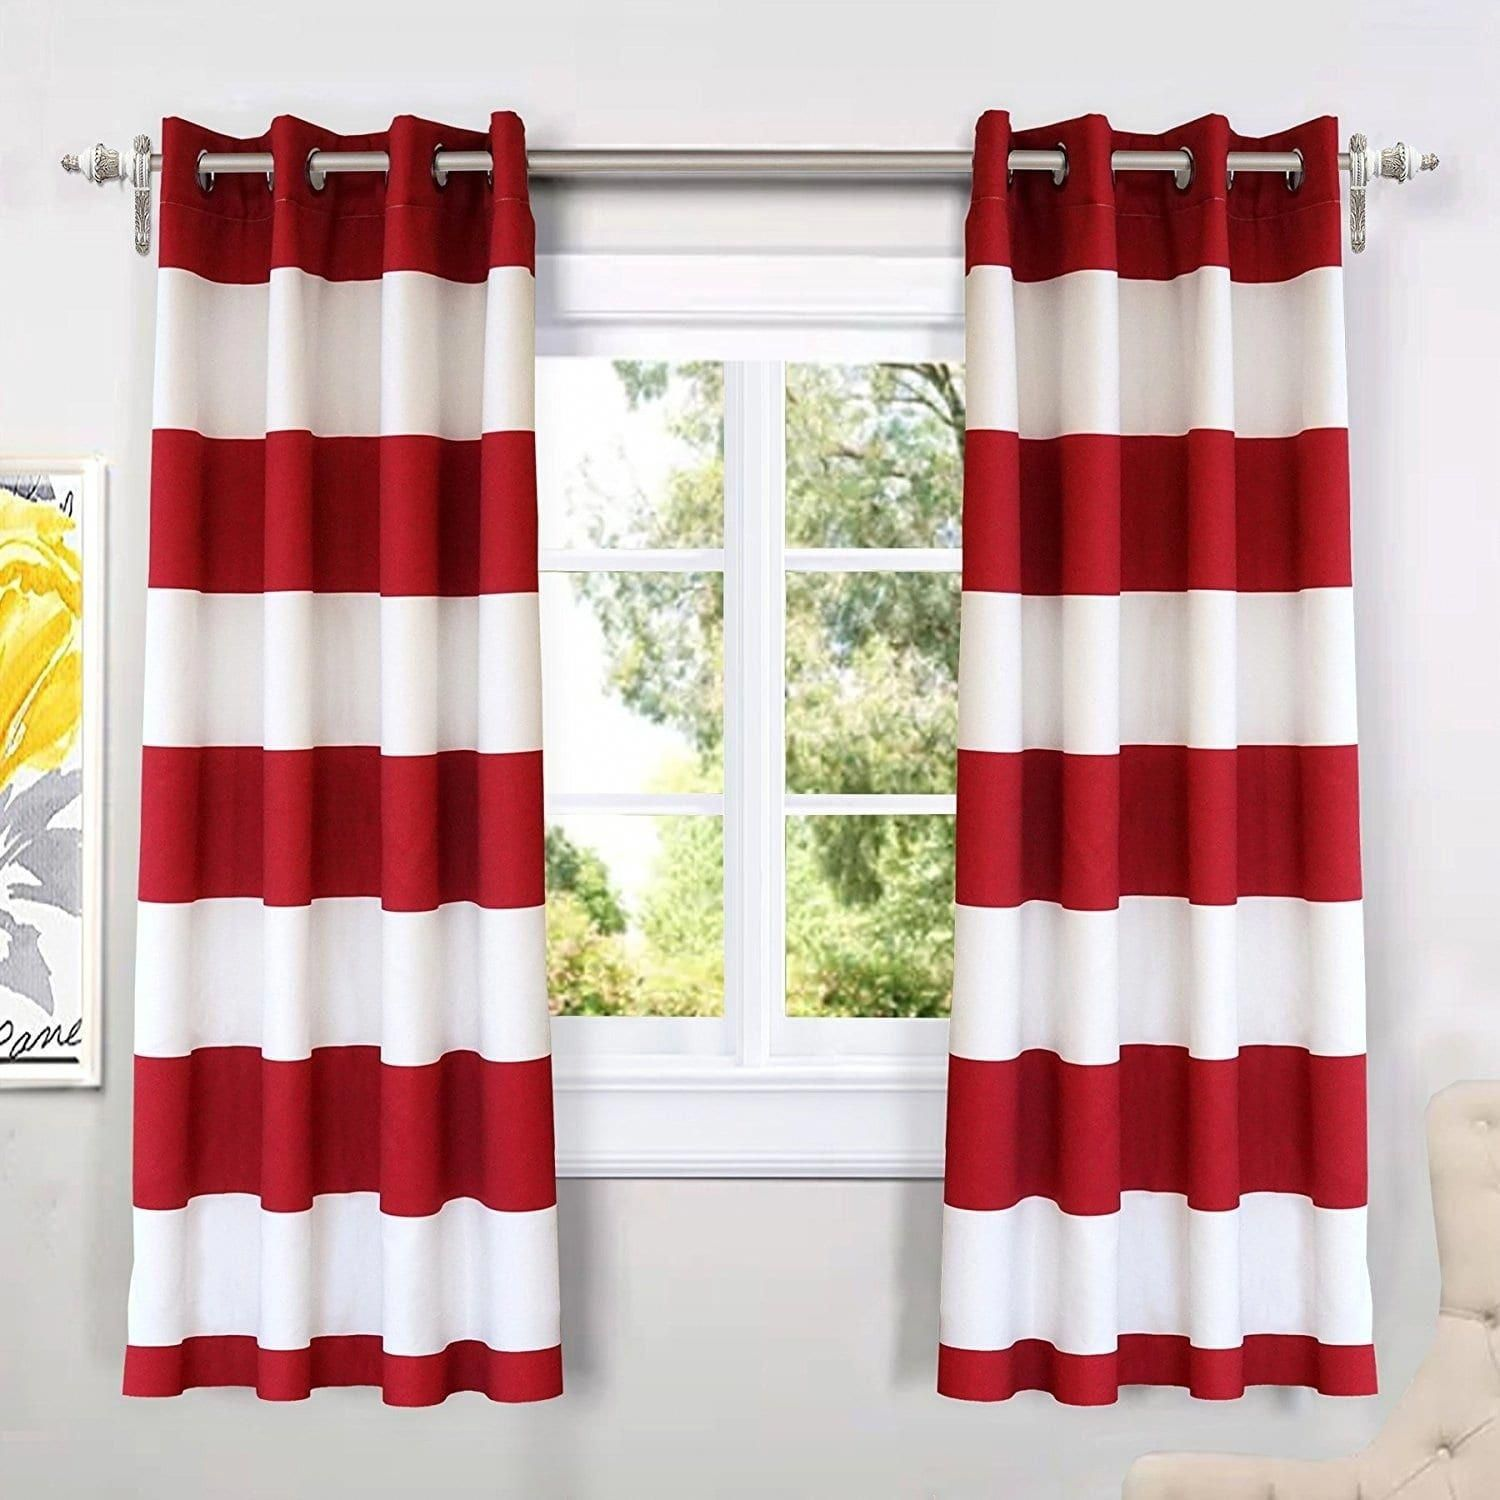 Best 3d Scenery Blackout Curtains Online Red Kitchen Decor Red